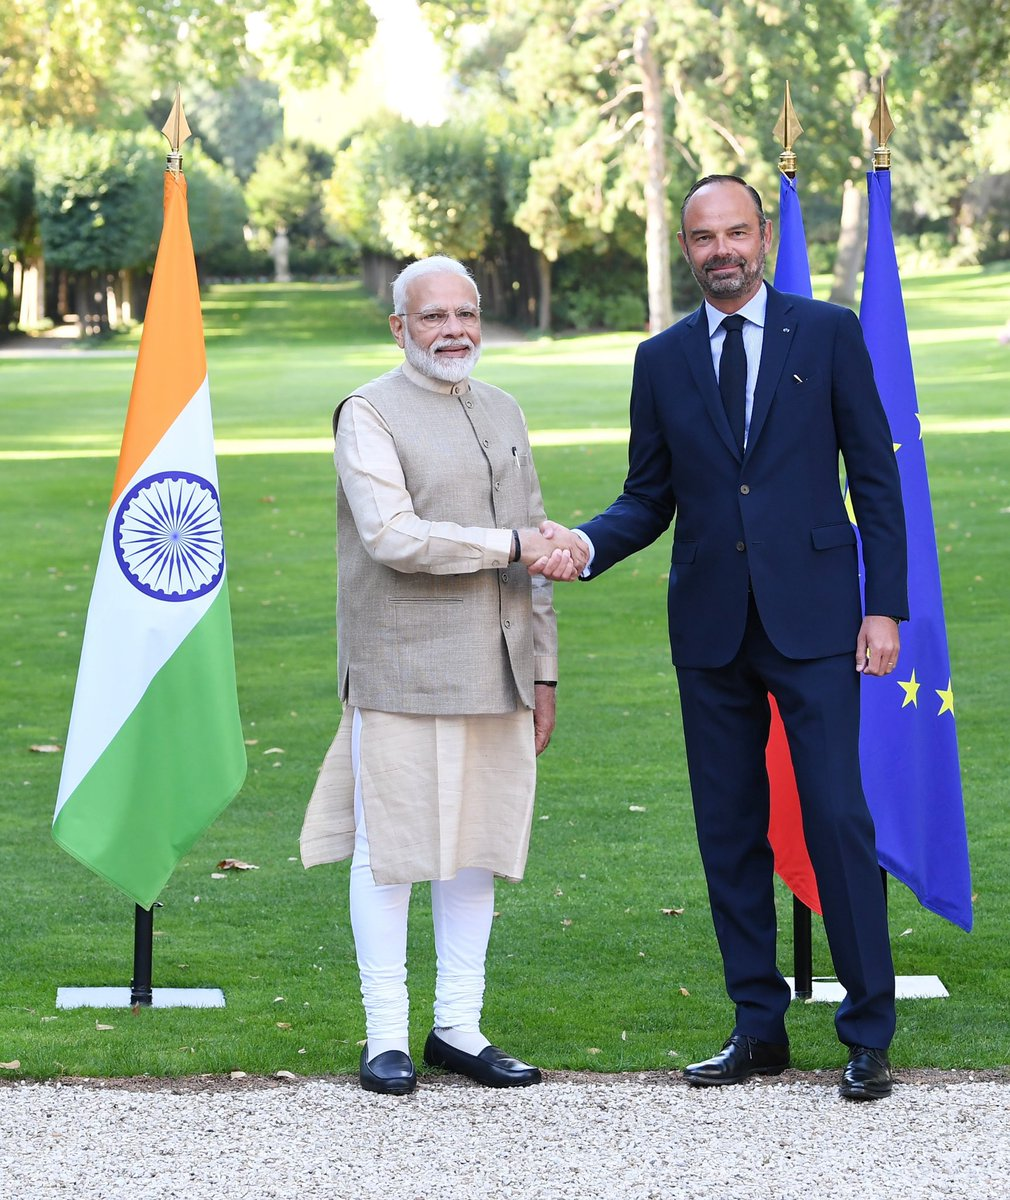 Met Mr. @EPhilippePM, Prime Minister of the French Republic. Our talks were comprehensive and covered the full range of India-French ties. <br>http://pic.twitter.com/DC8POEW93S